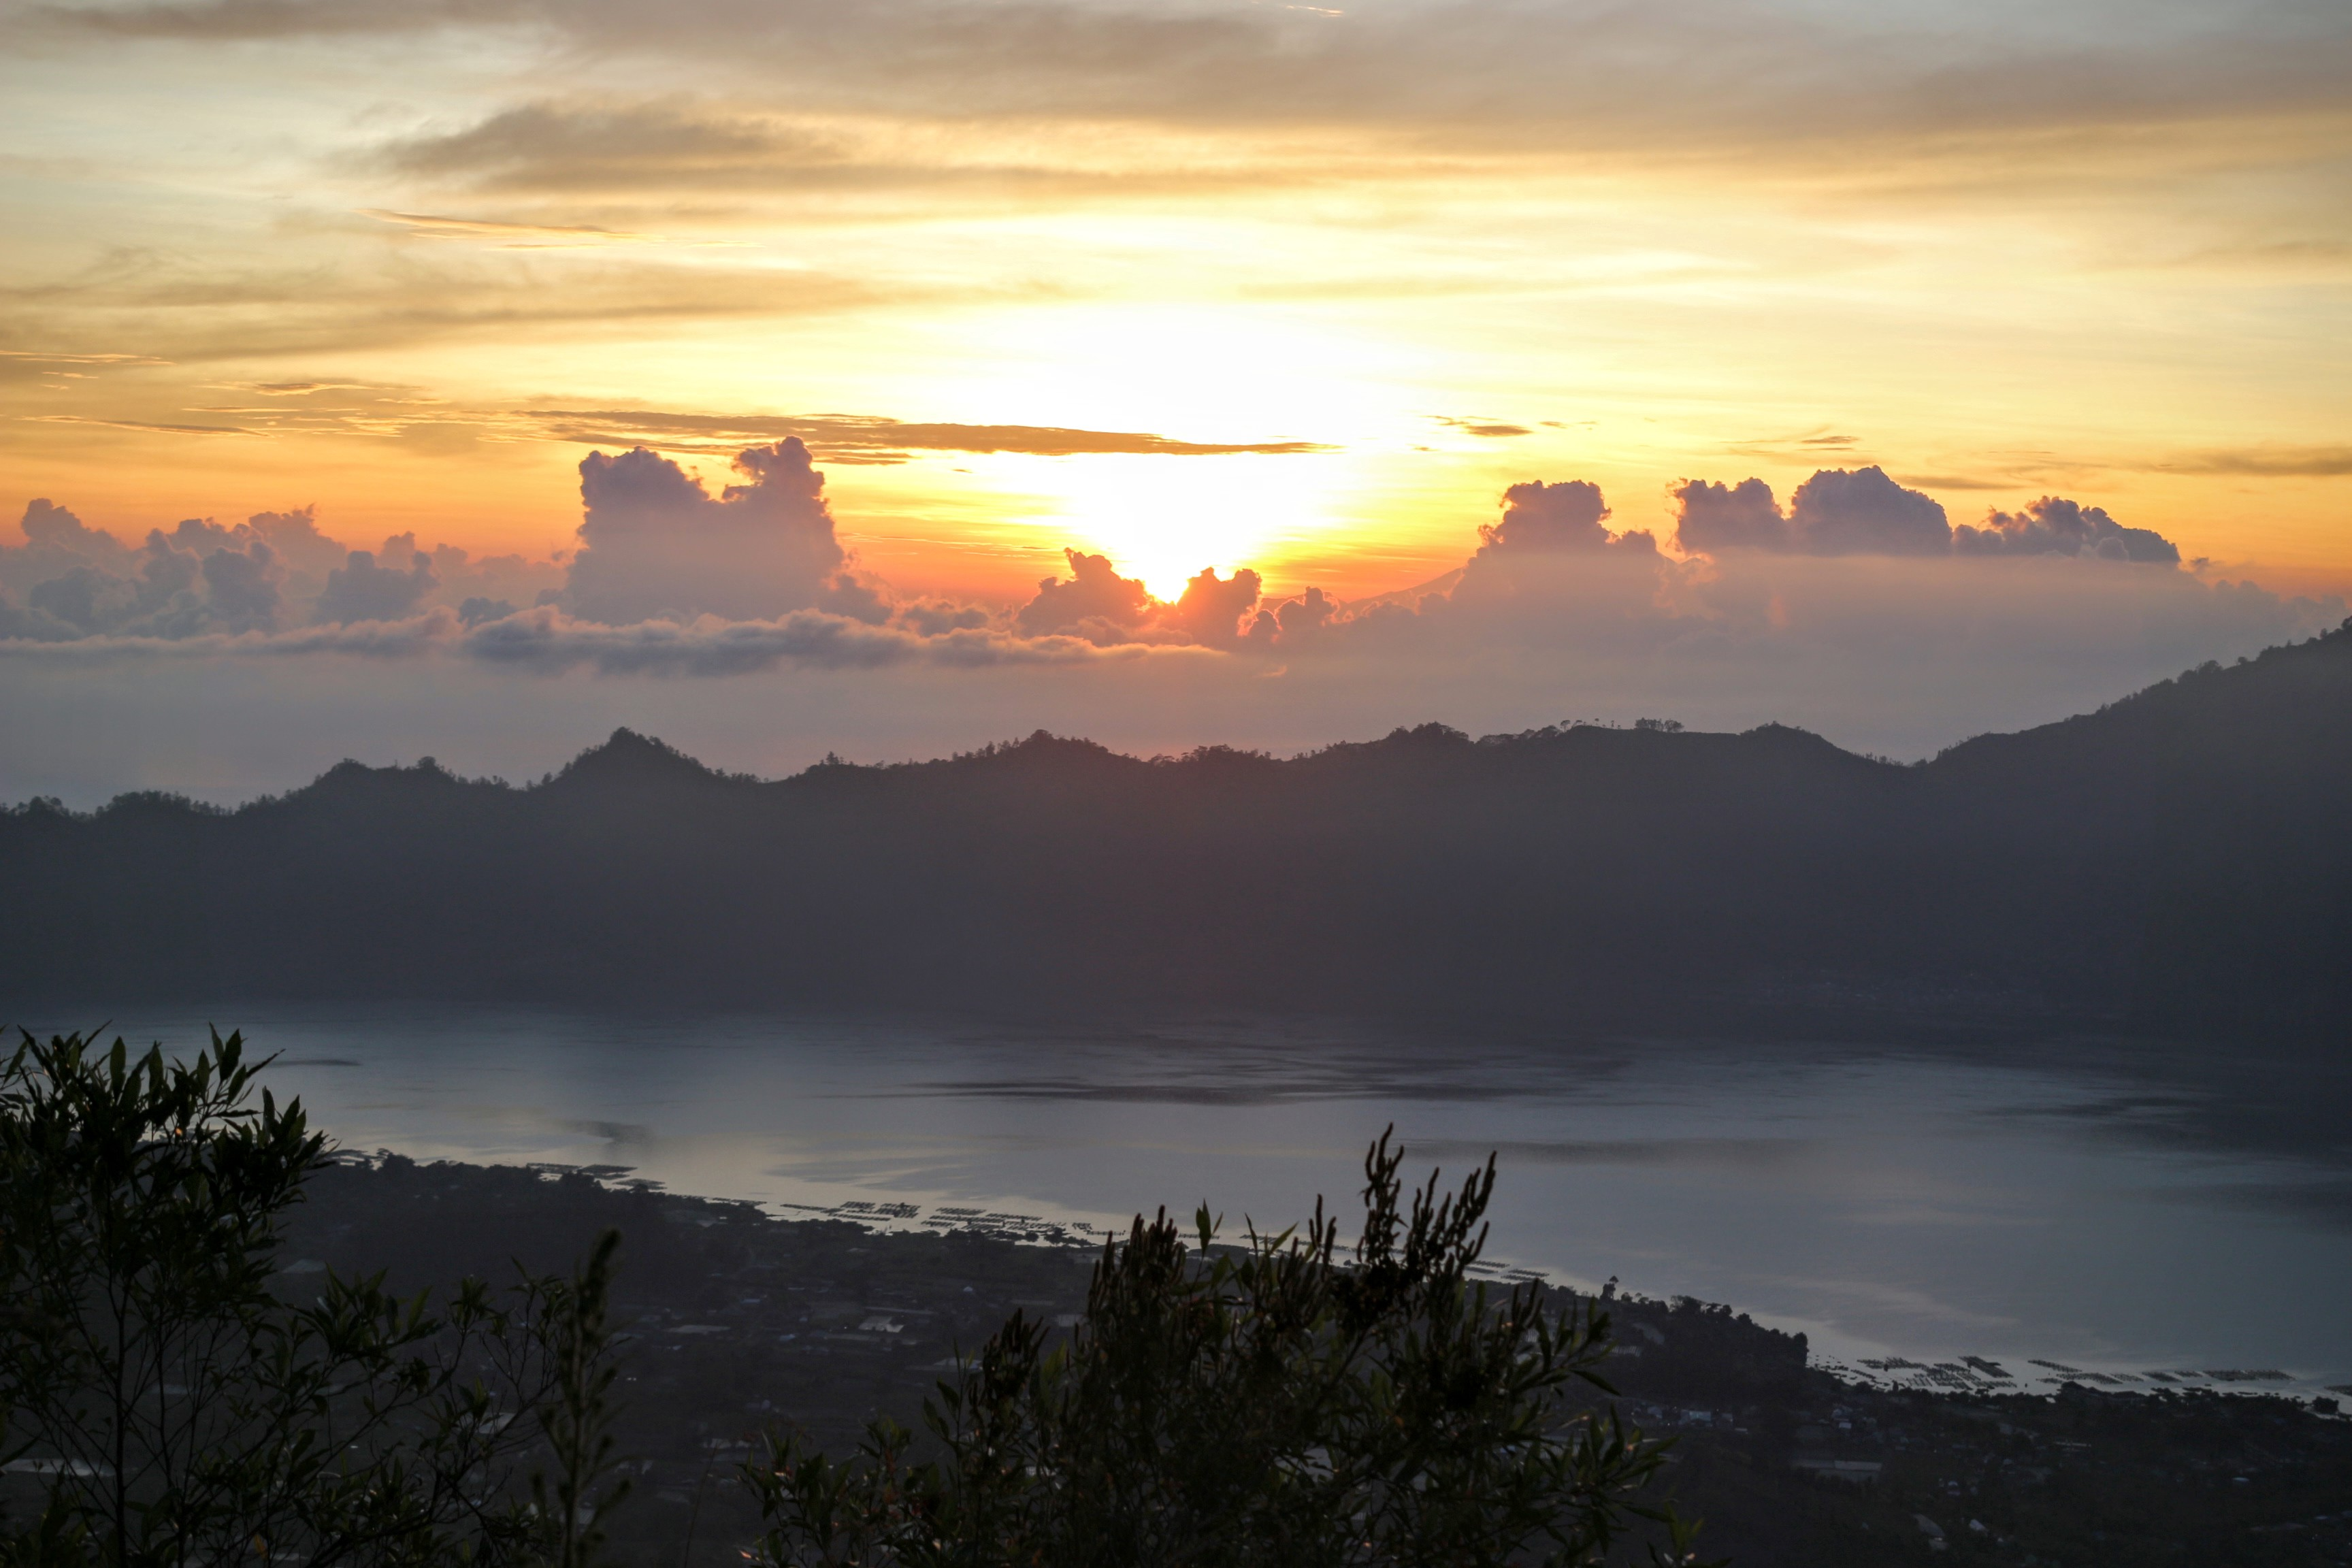 Ubud Mount Batur 1920x1280 - Travel Guide to Bali: Places to See, Things to Do and Activities to Experience